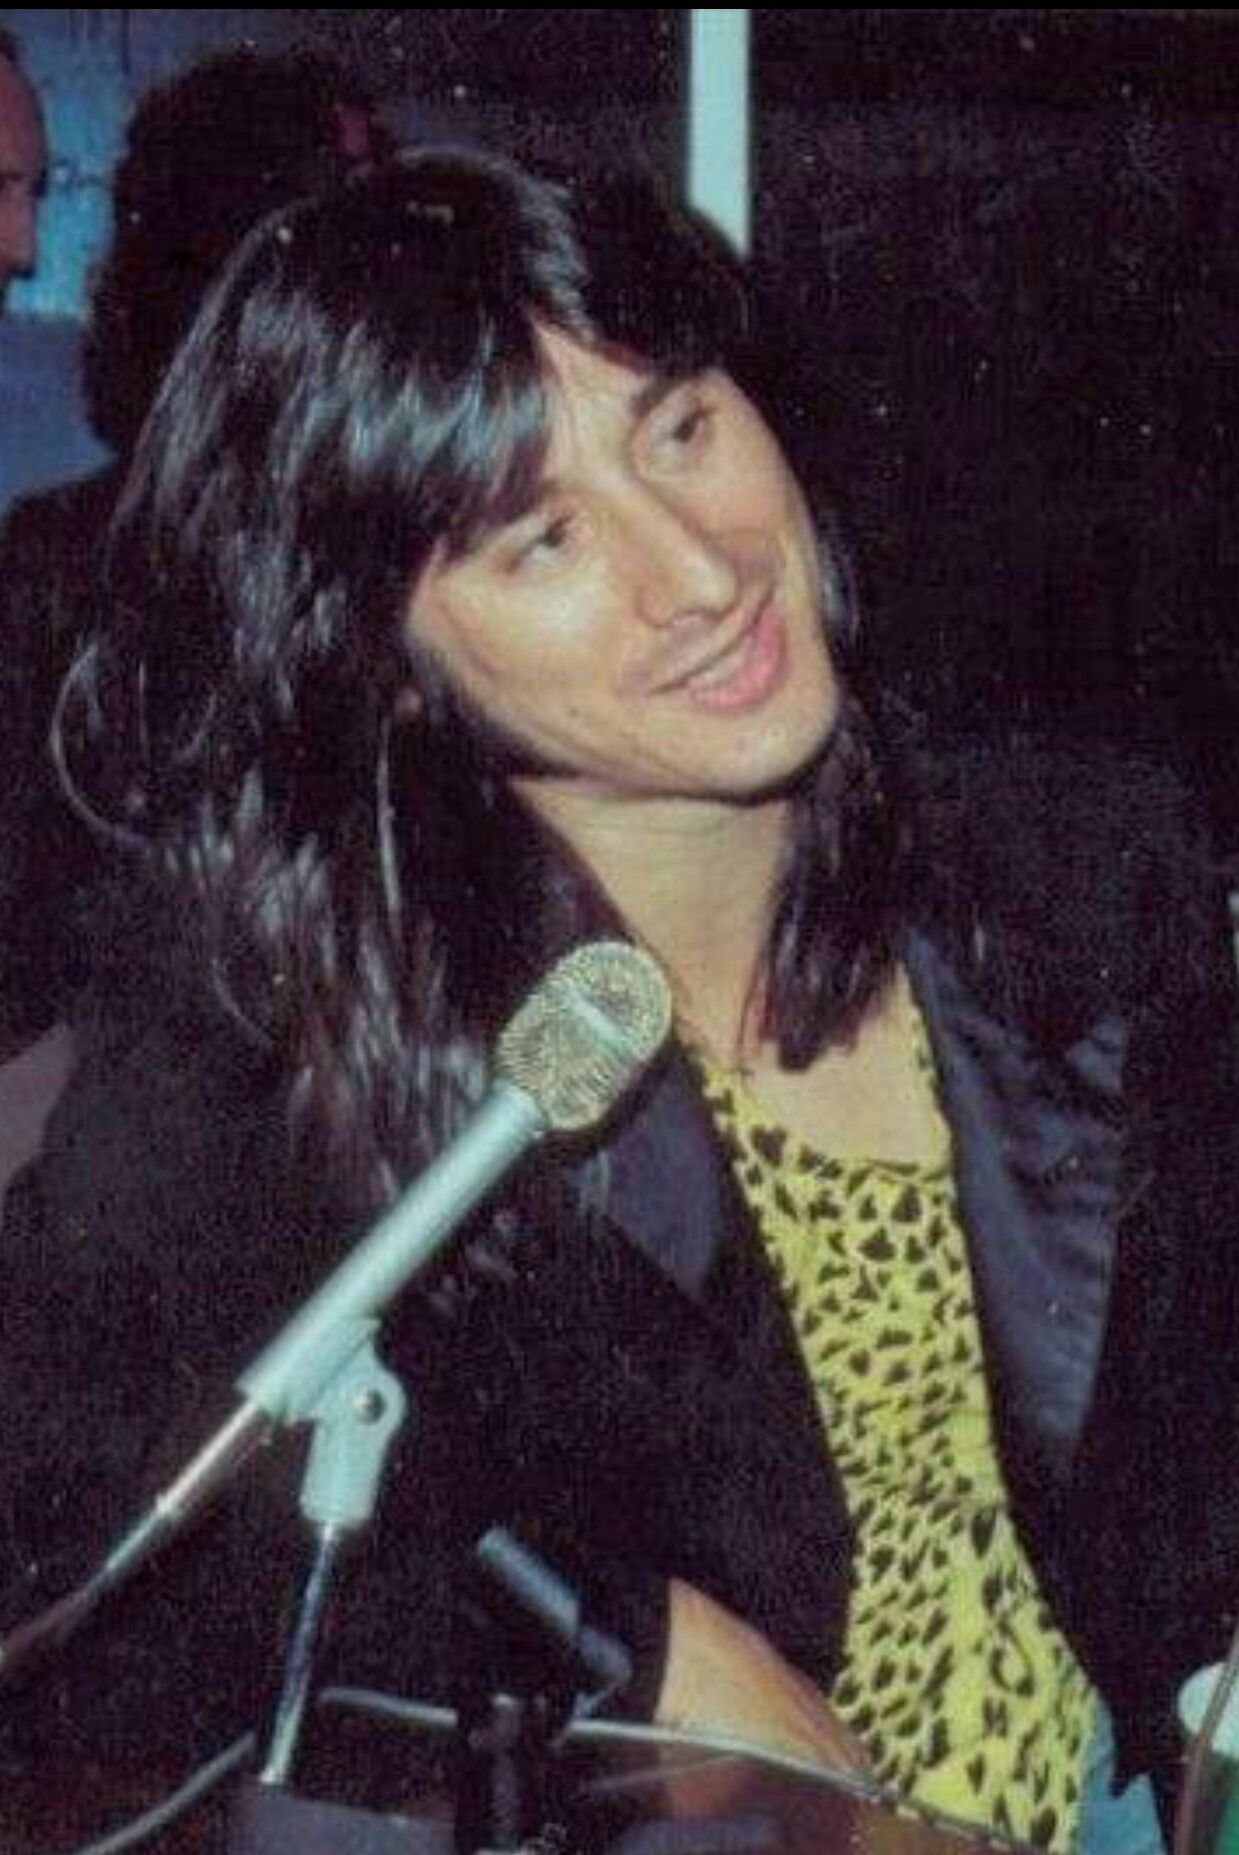 Pin By Mikesgirl On Steve Perry Steve Perry Journey Steve Perry Singer